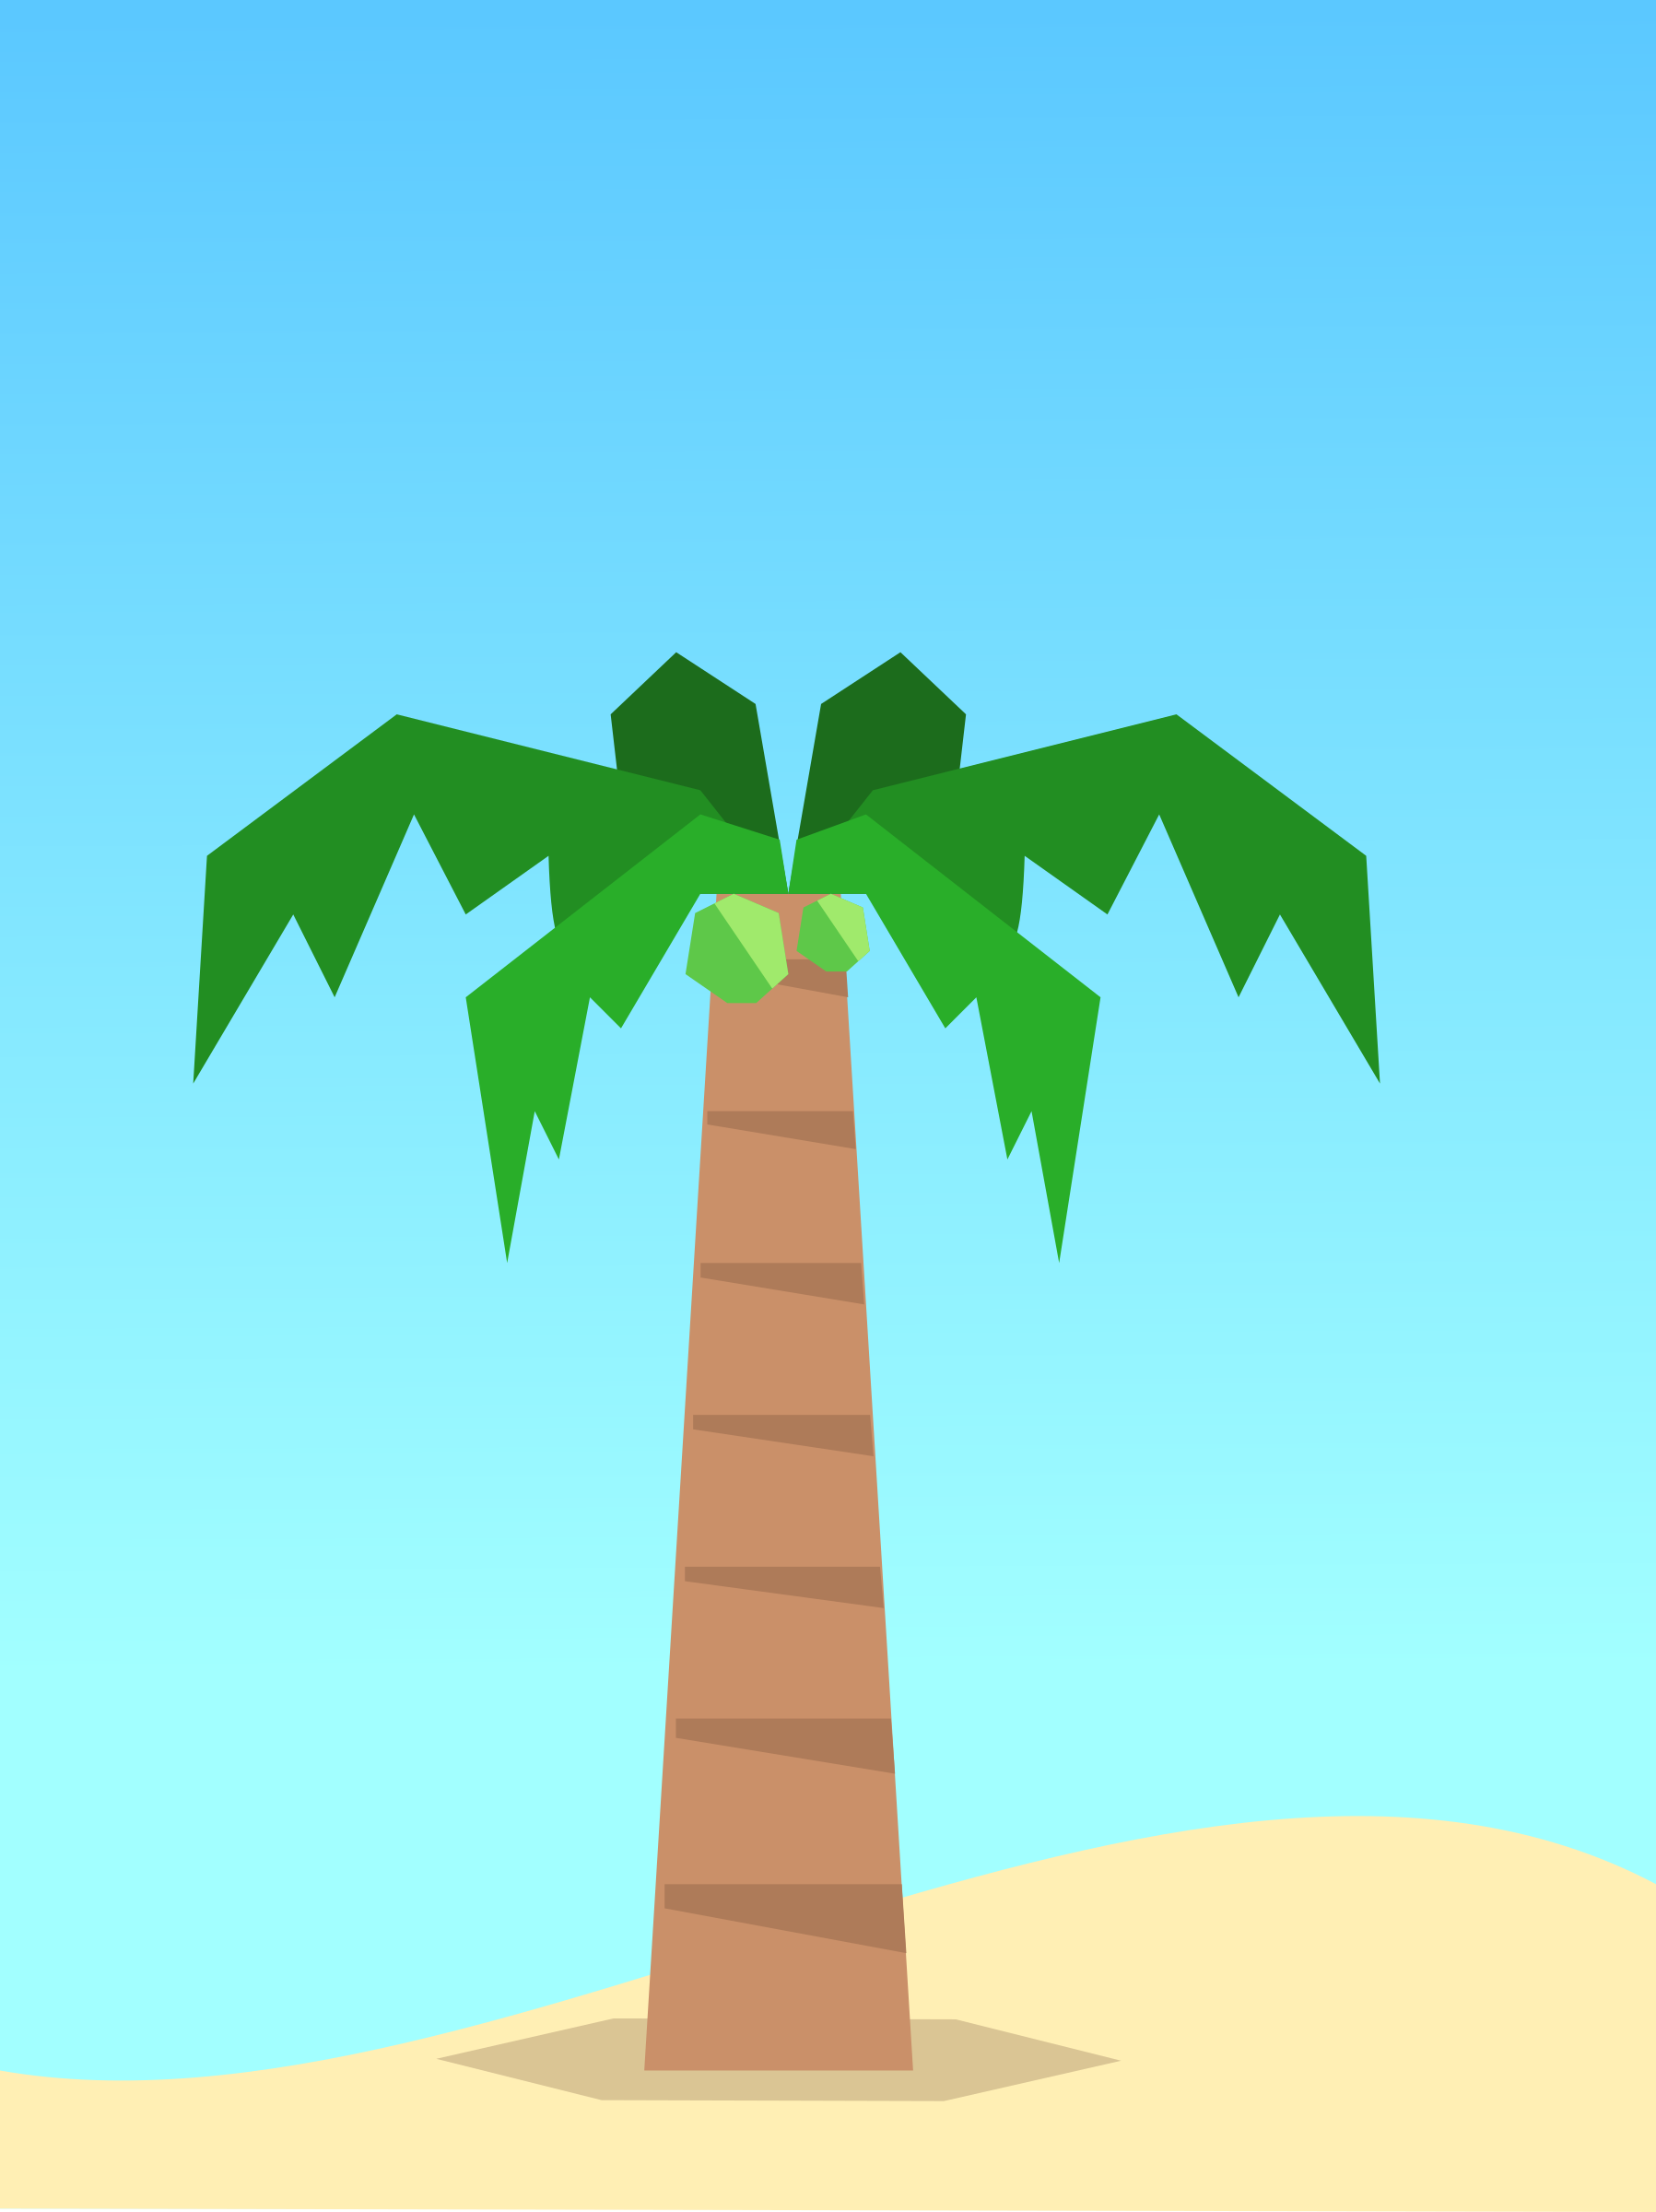 Beach scene with Coconut tree minimal design background by monsterbraingames